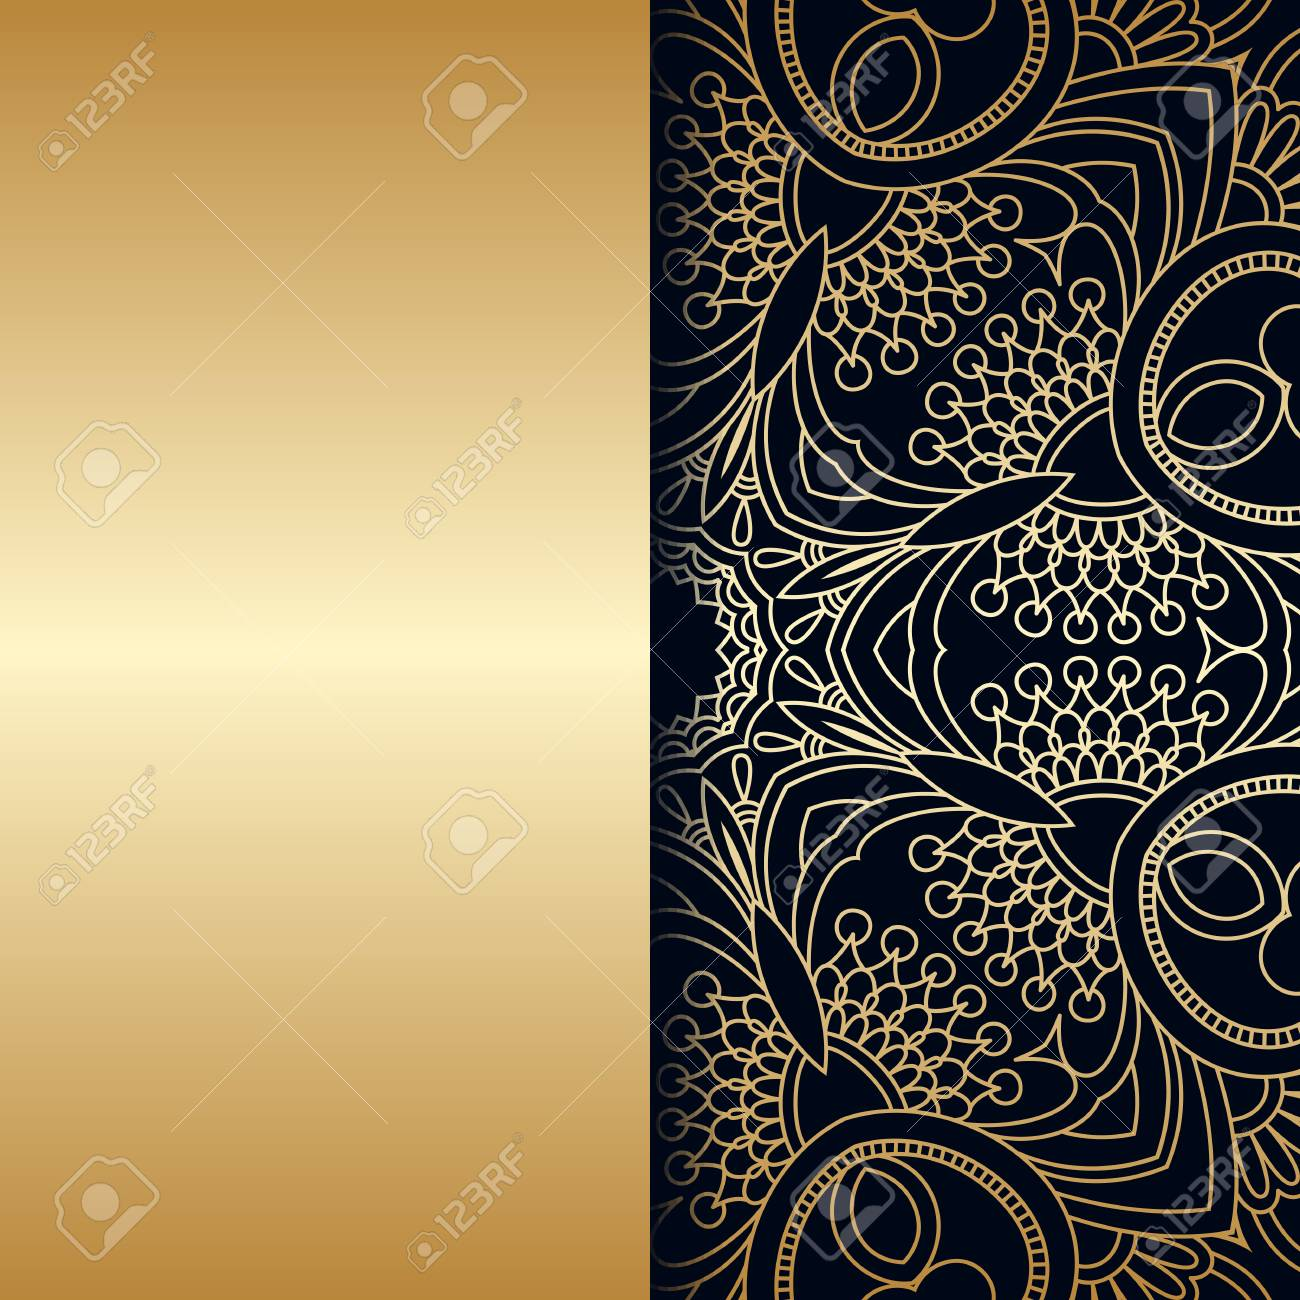 Vector Vintage Floral Decorative Background For Design Invitation Royalty Free Cliparts Vectors And Stock Illustration Image 73382052